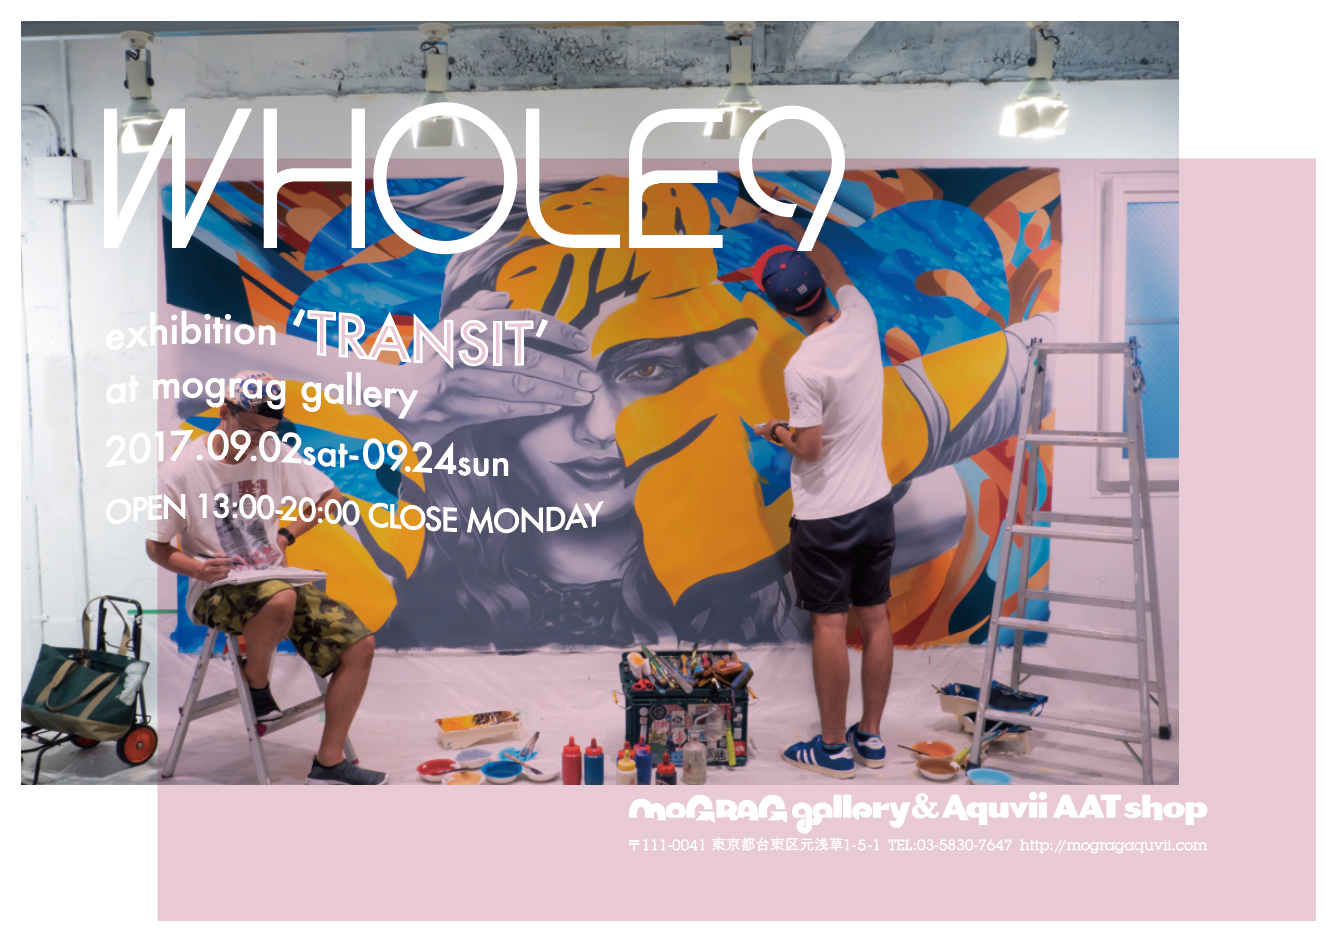 WHOLE9 exhibition『TRANSIT』